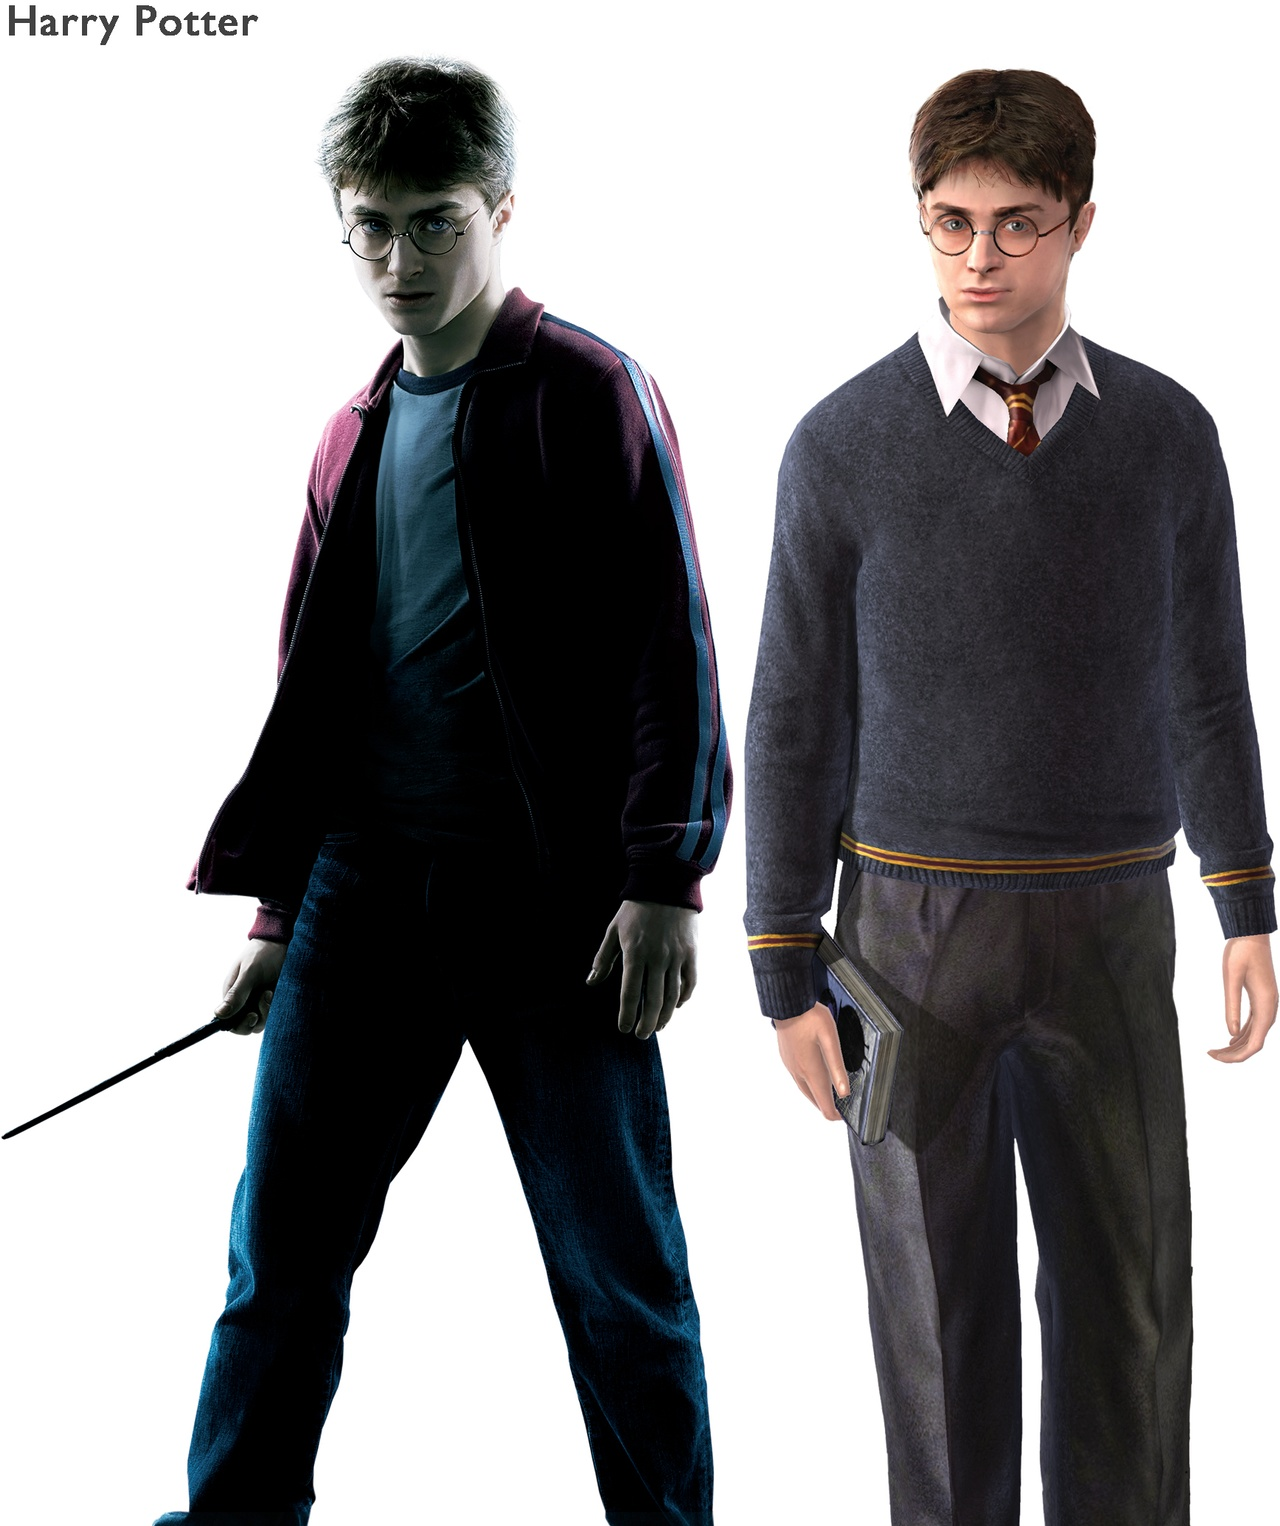 harry_potter_and_the_half-blood_prince-33.jpg - Harry Potter and the Half-Blood Prince